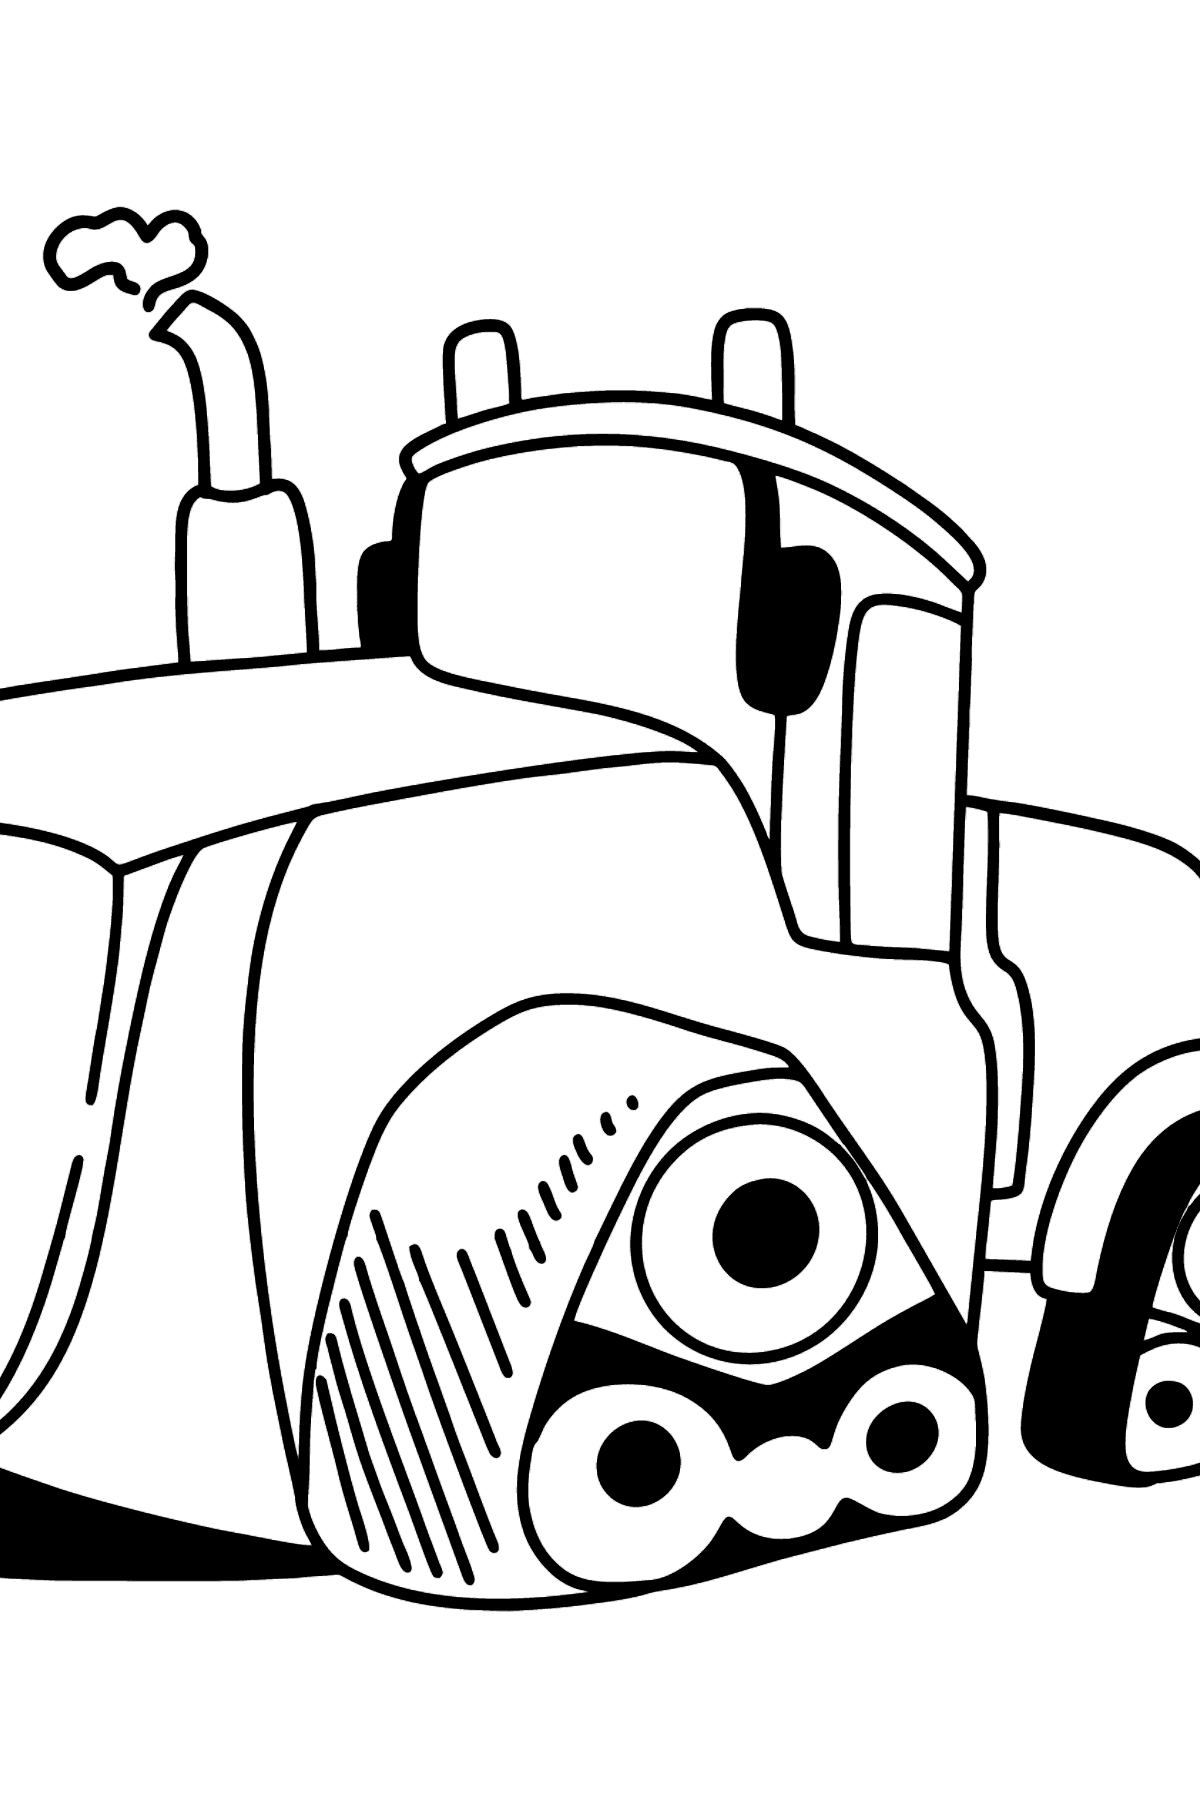 John Deere 9620RX Crawler Tractor coloring page - Coloring Pages for Kids